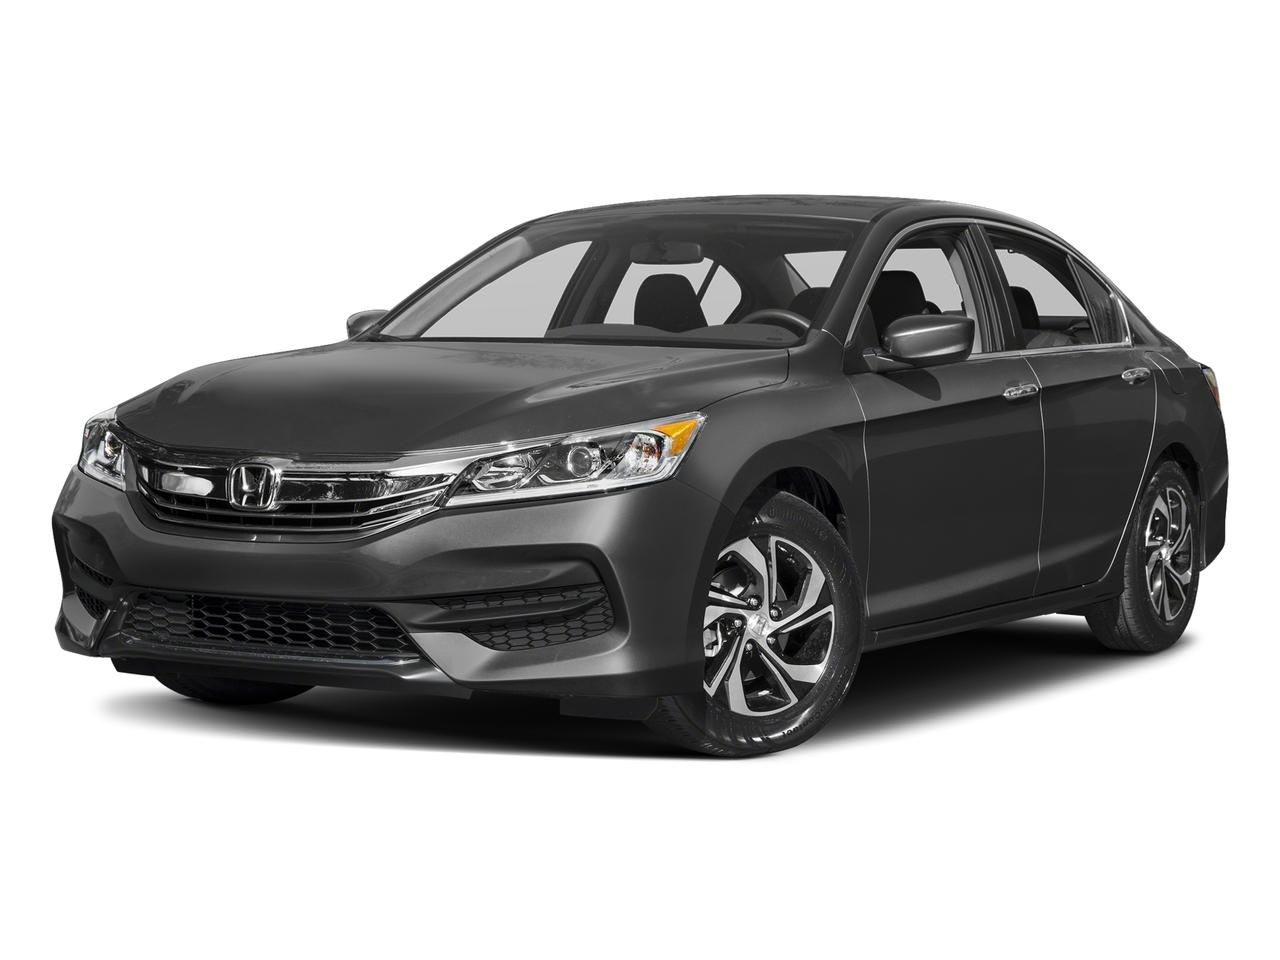 2017 Honda Accord Sedan Vehicle Photo in Portland, OR 97225